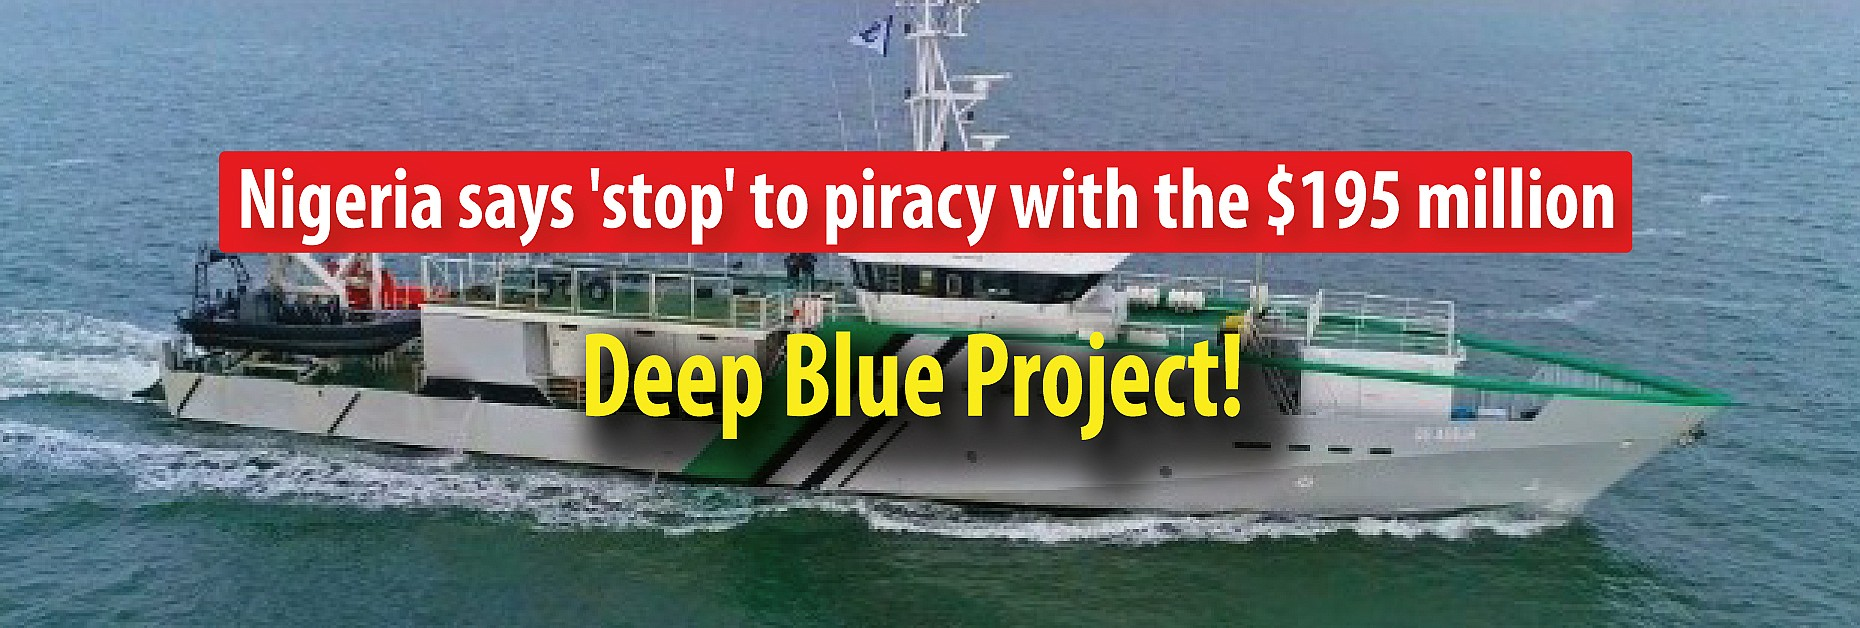 Nigeria says 'stop' to piracy with the $195 million Deep Blue Project!